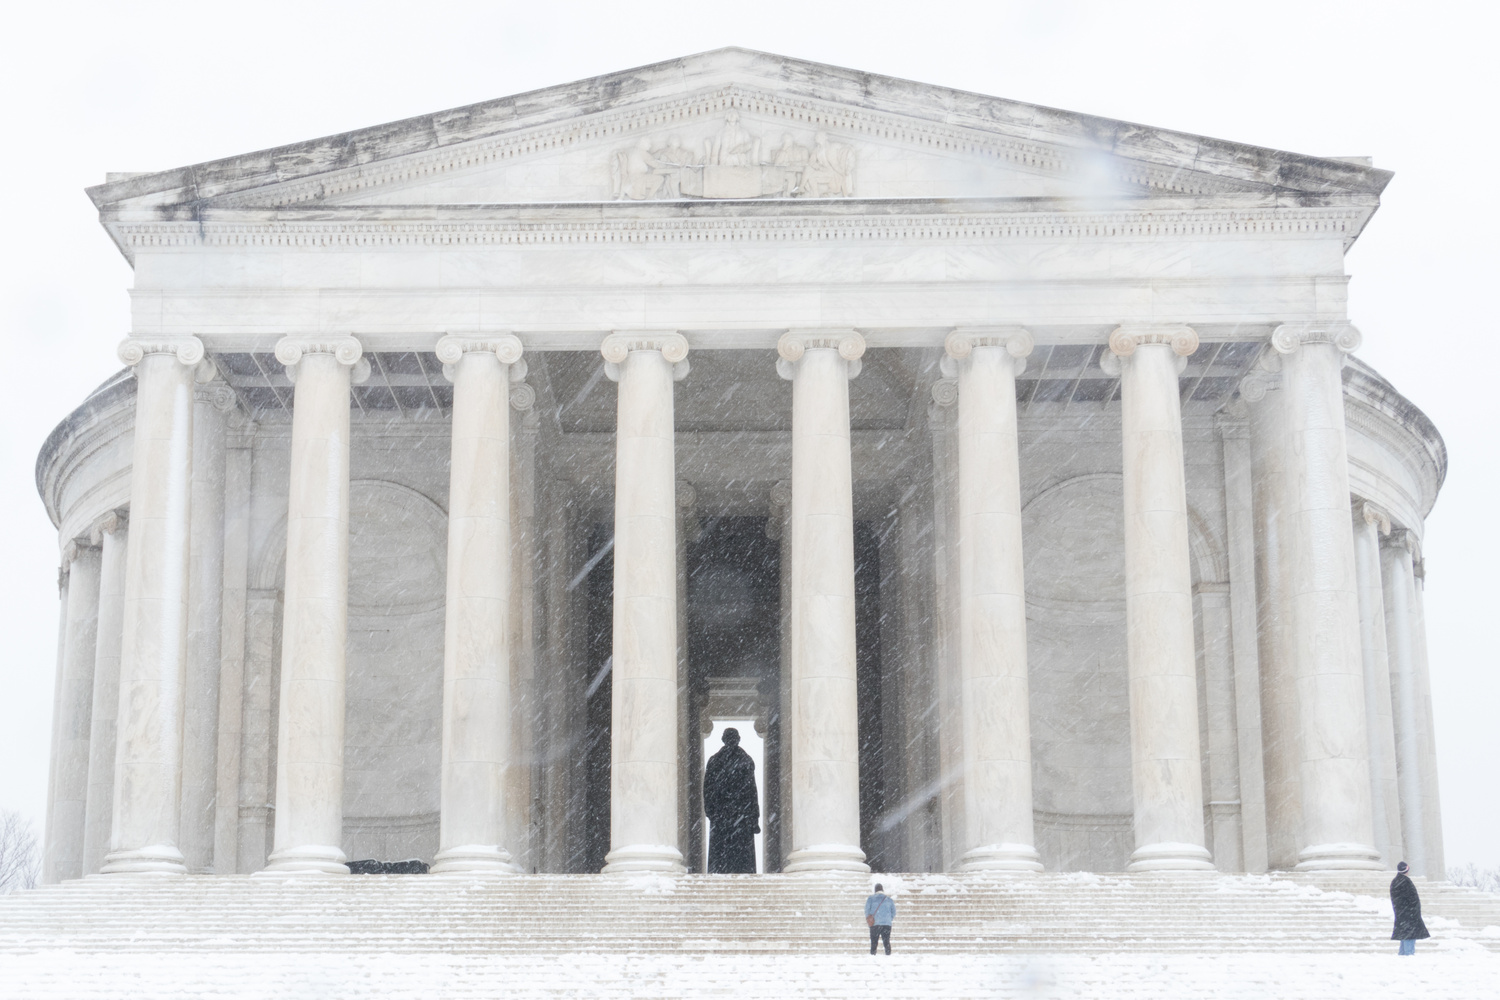 Jefferson Memorial in the Snow by Paul FIlios